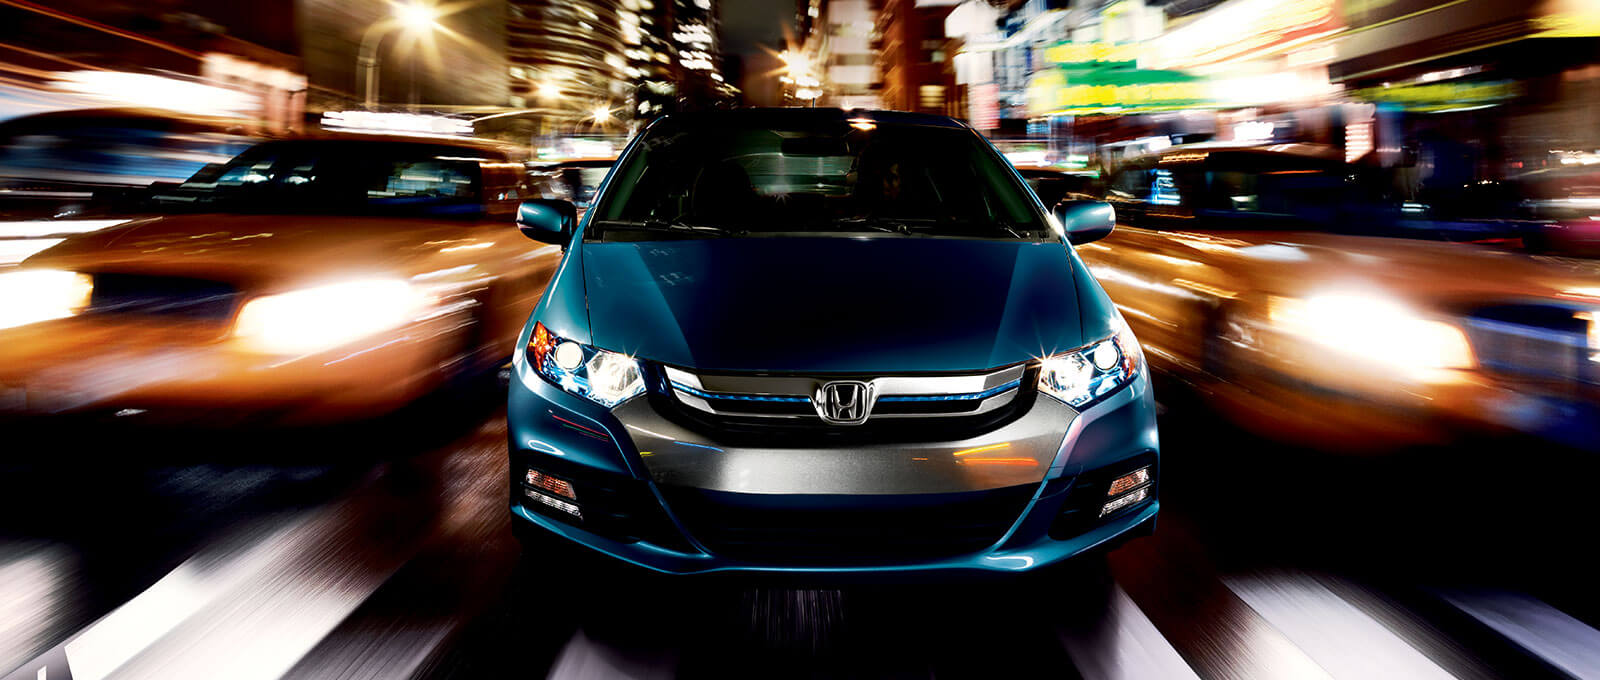 2014 Honda Insight front view